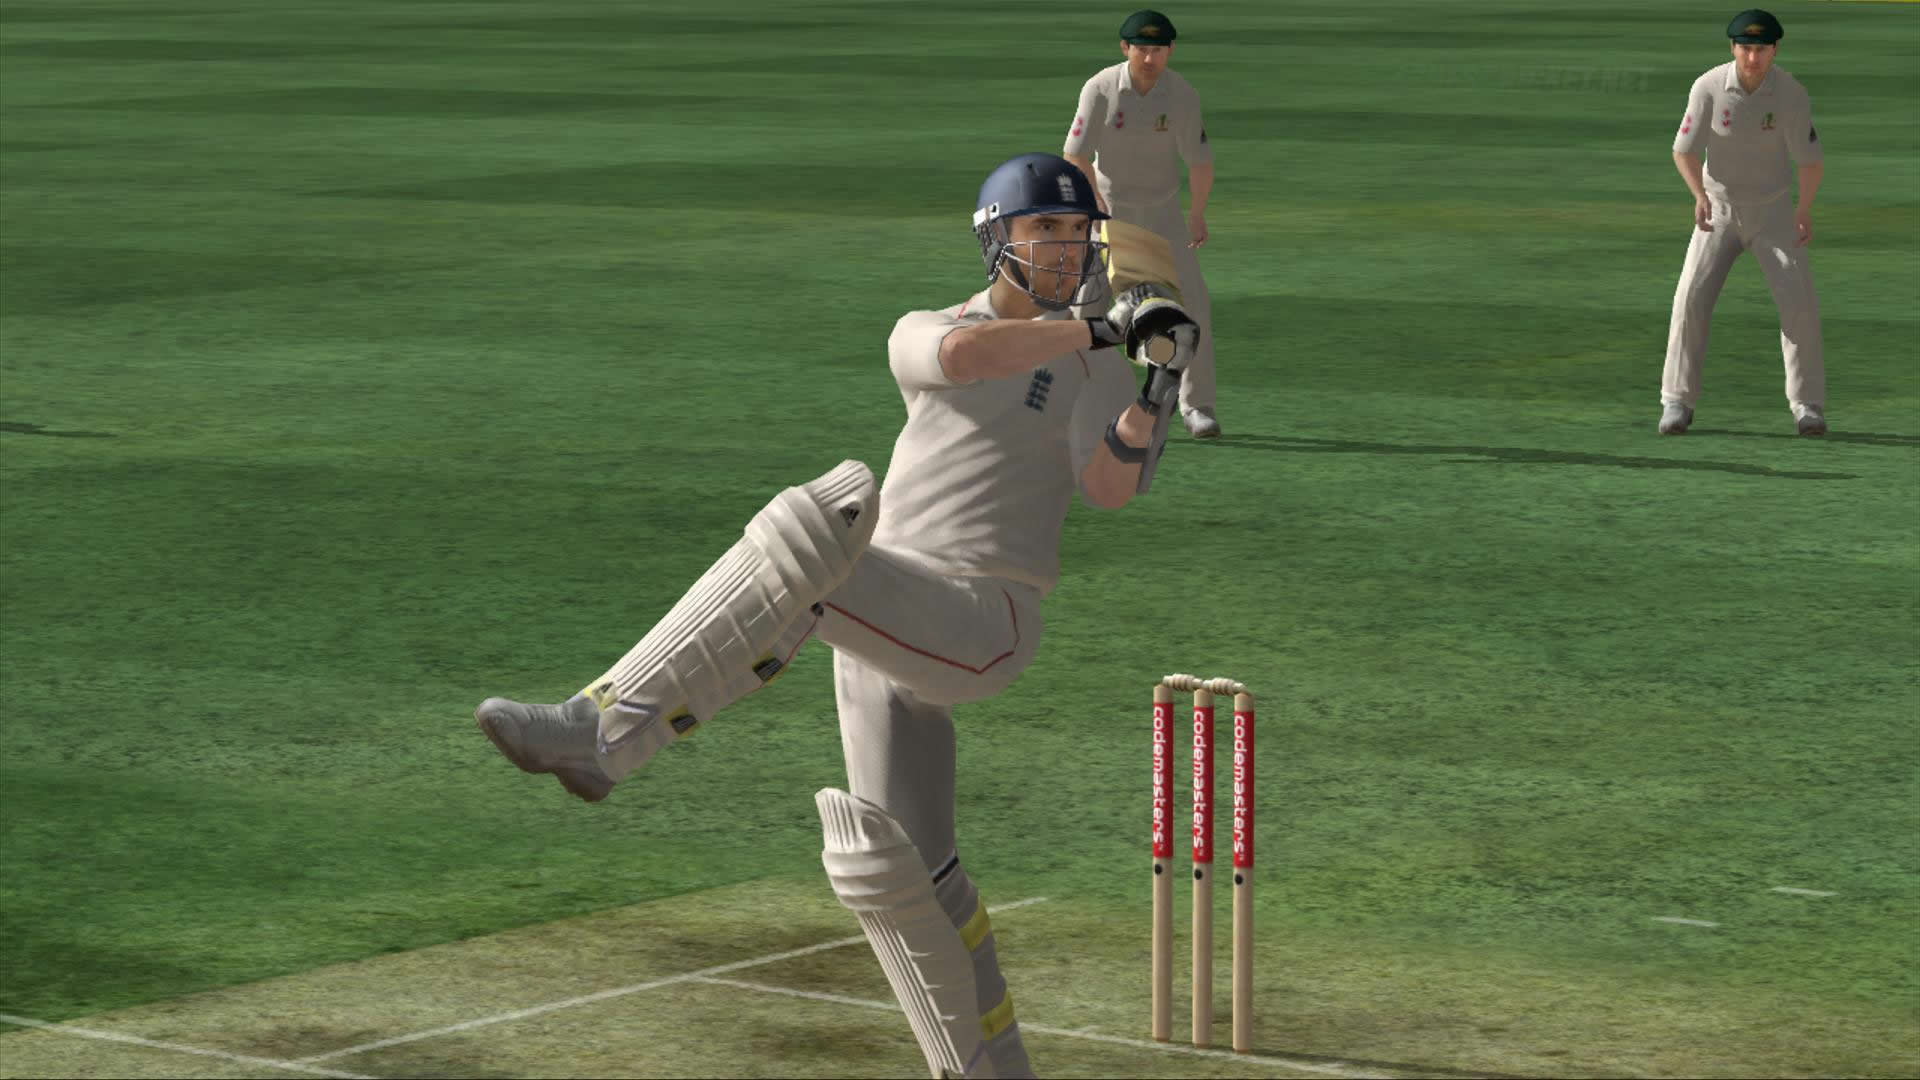 Ea sports 07 cricket game free download softwaresgames&movies.